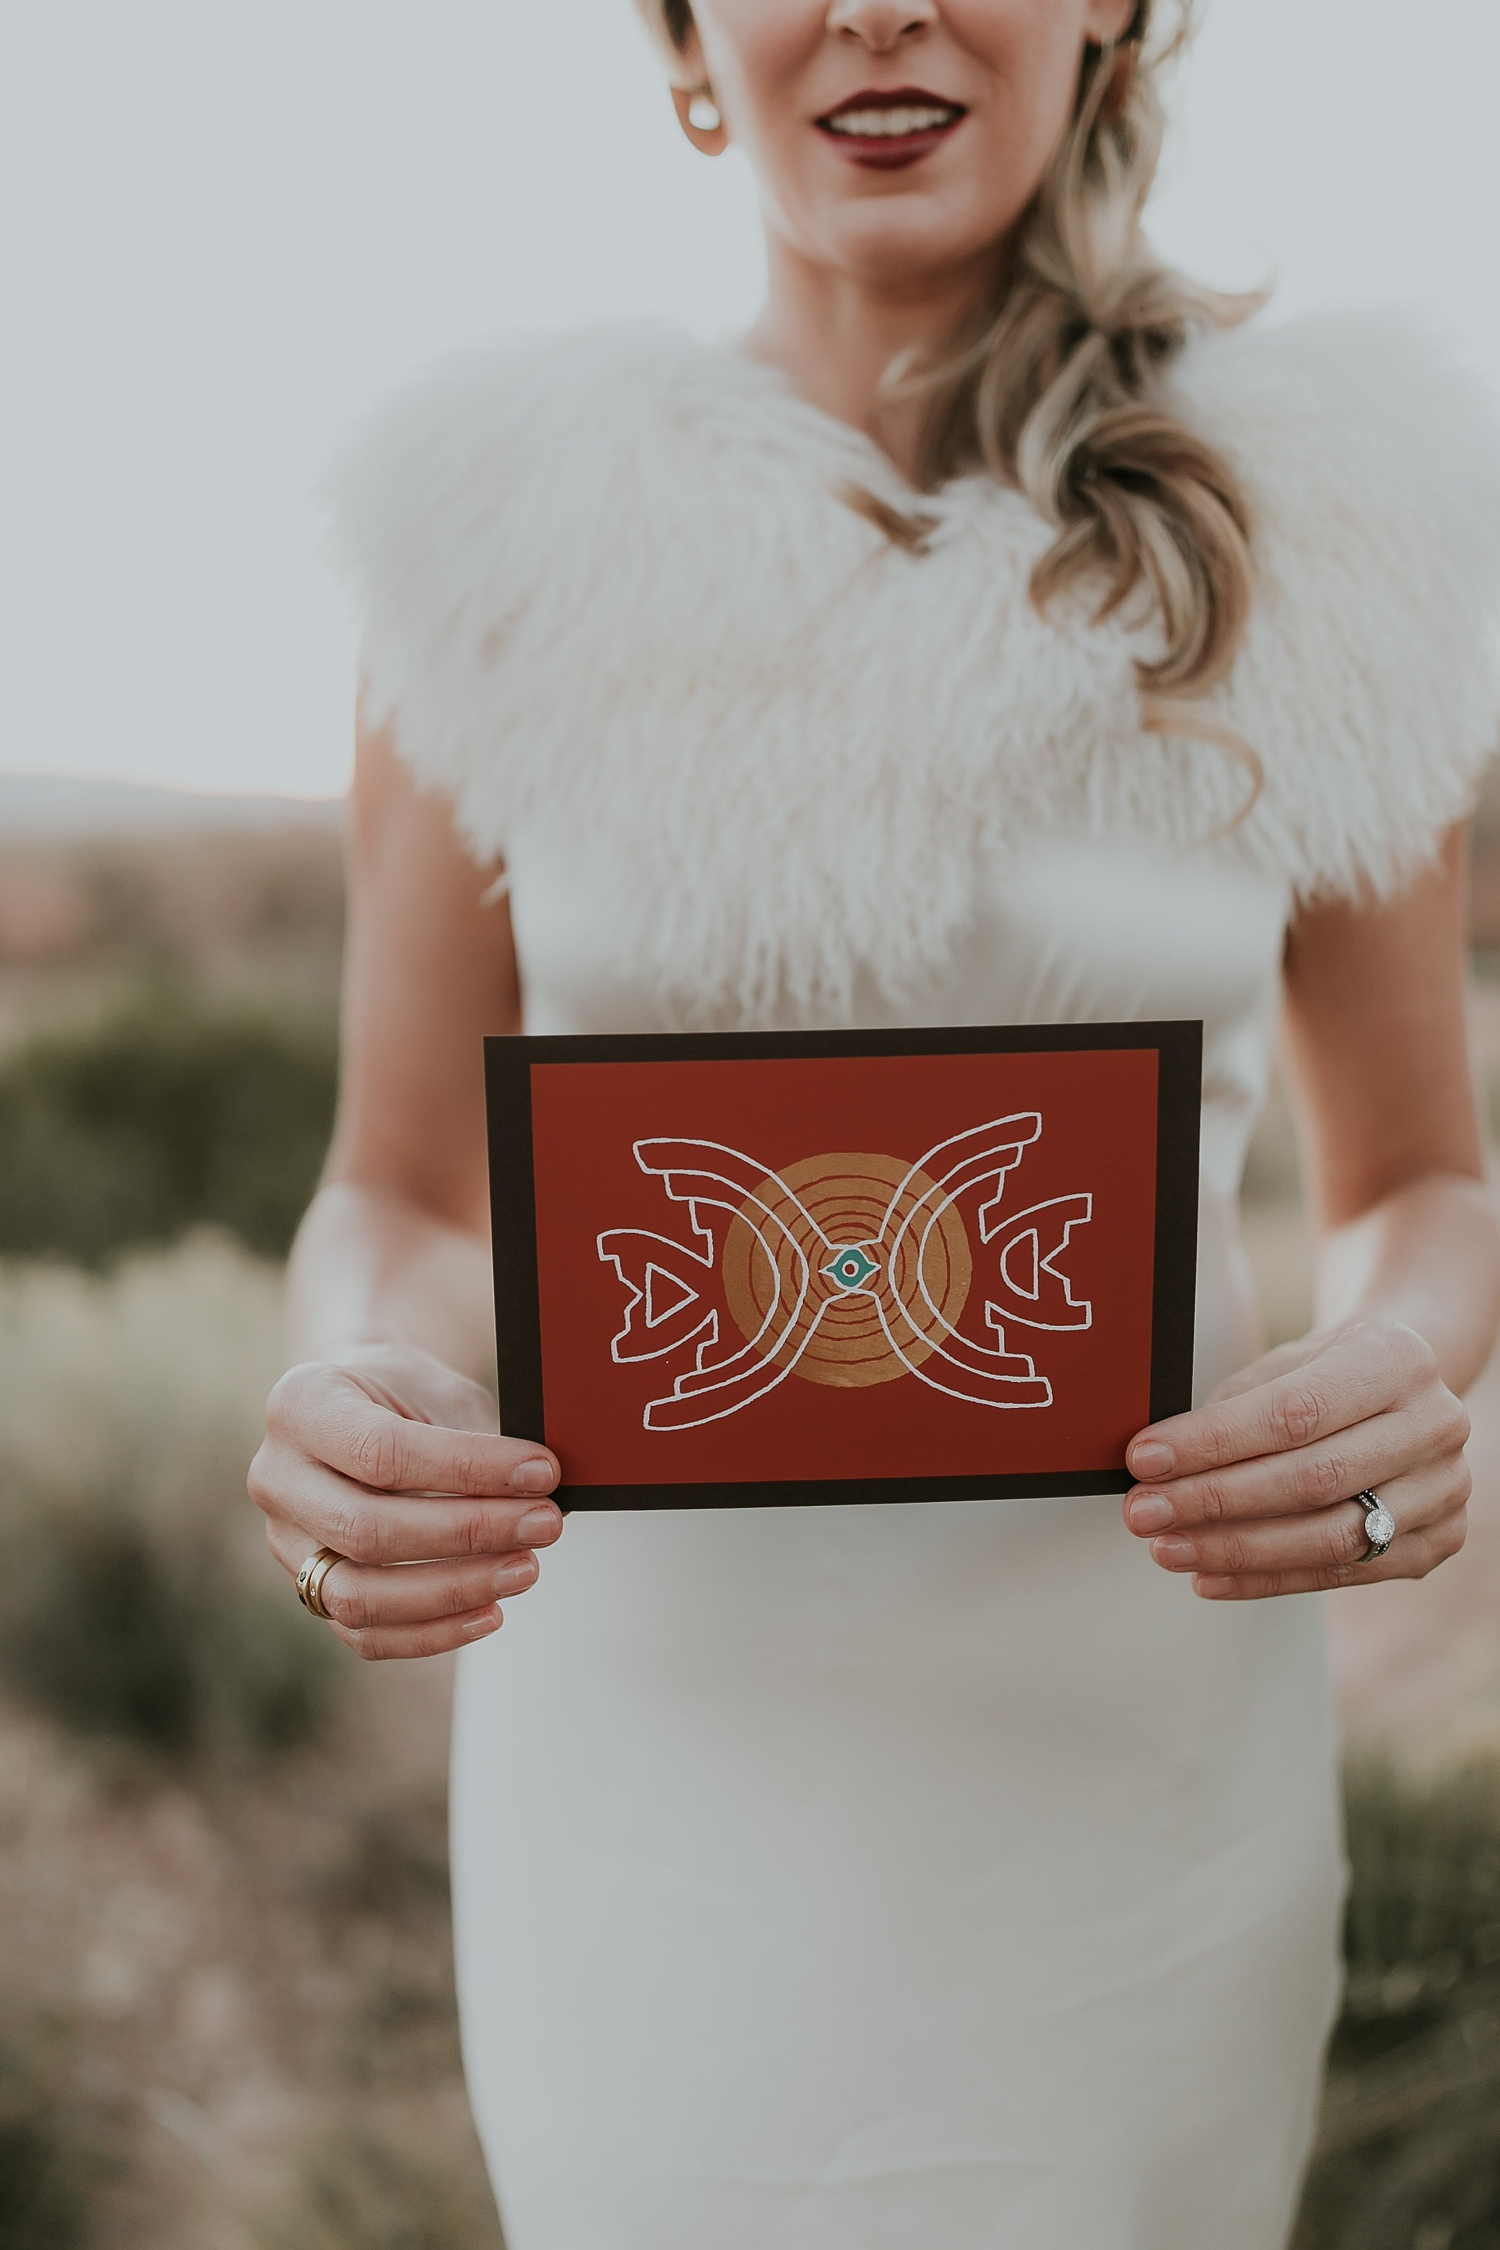 Alicia+lucia+photography+-+albuquerque+wedding+photographer+-+santa+fe+wedding+photography+-+new+mexico+wedding+photographer+-+new+mexico+ghost+ranch+wedding+-+styled+wedding+shoot_0082.jpg